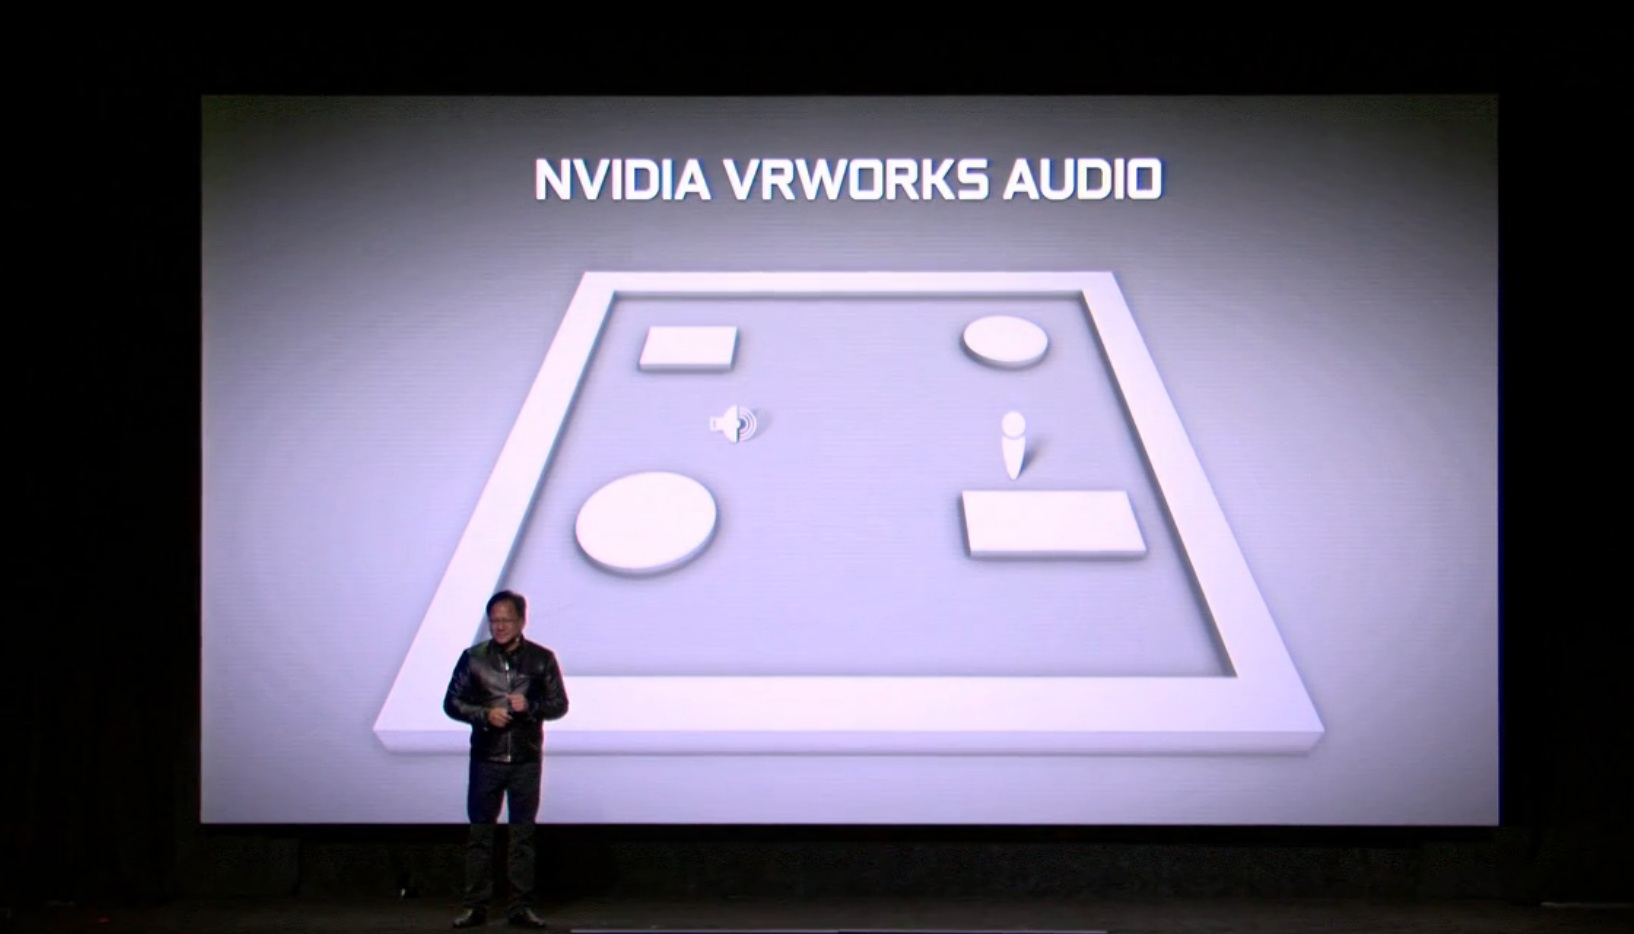 NVIDIA says it can make VR worlds sound and feel real